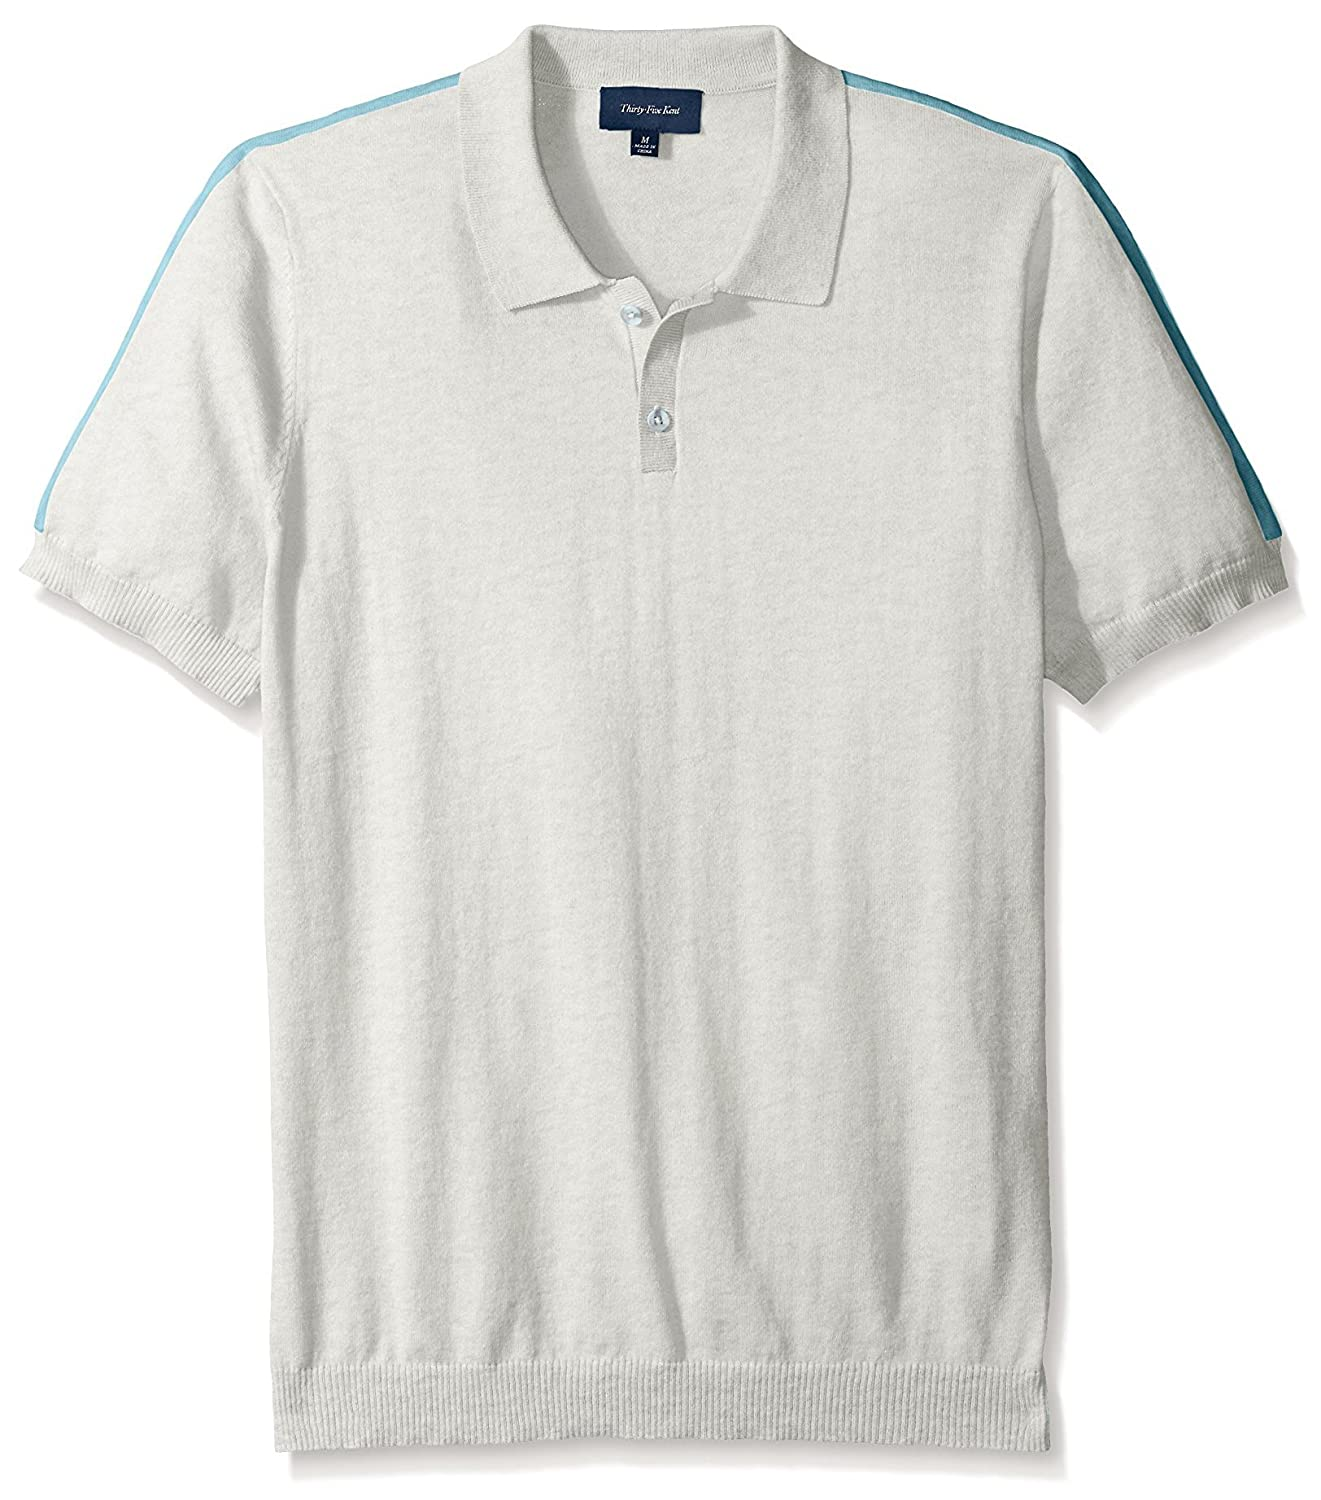 Men's Vintage Christmas Gift Ideas Thirty Five Kent Mens Brushed Cotton Short Sleeve Polo $44.00 AT vintagedancer.com